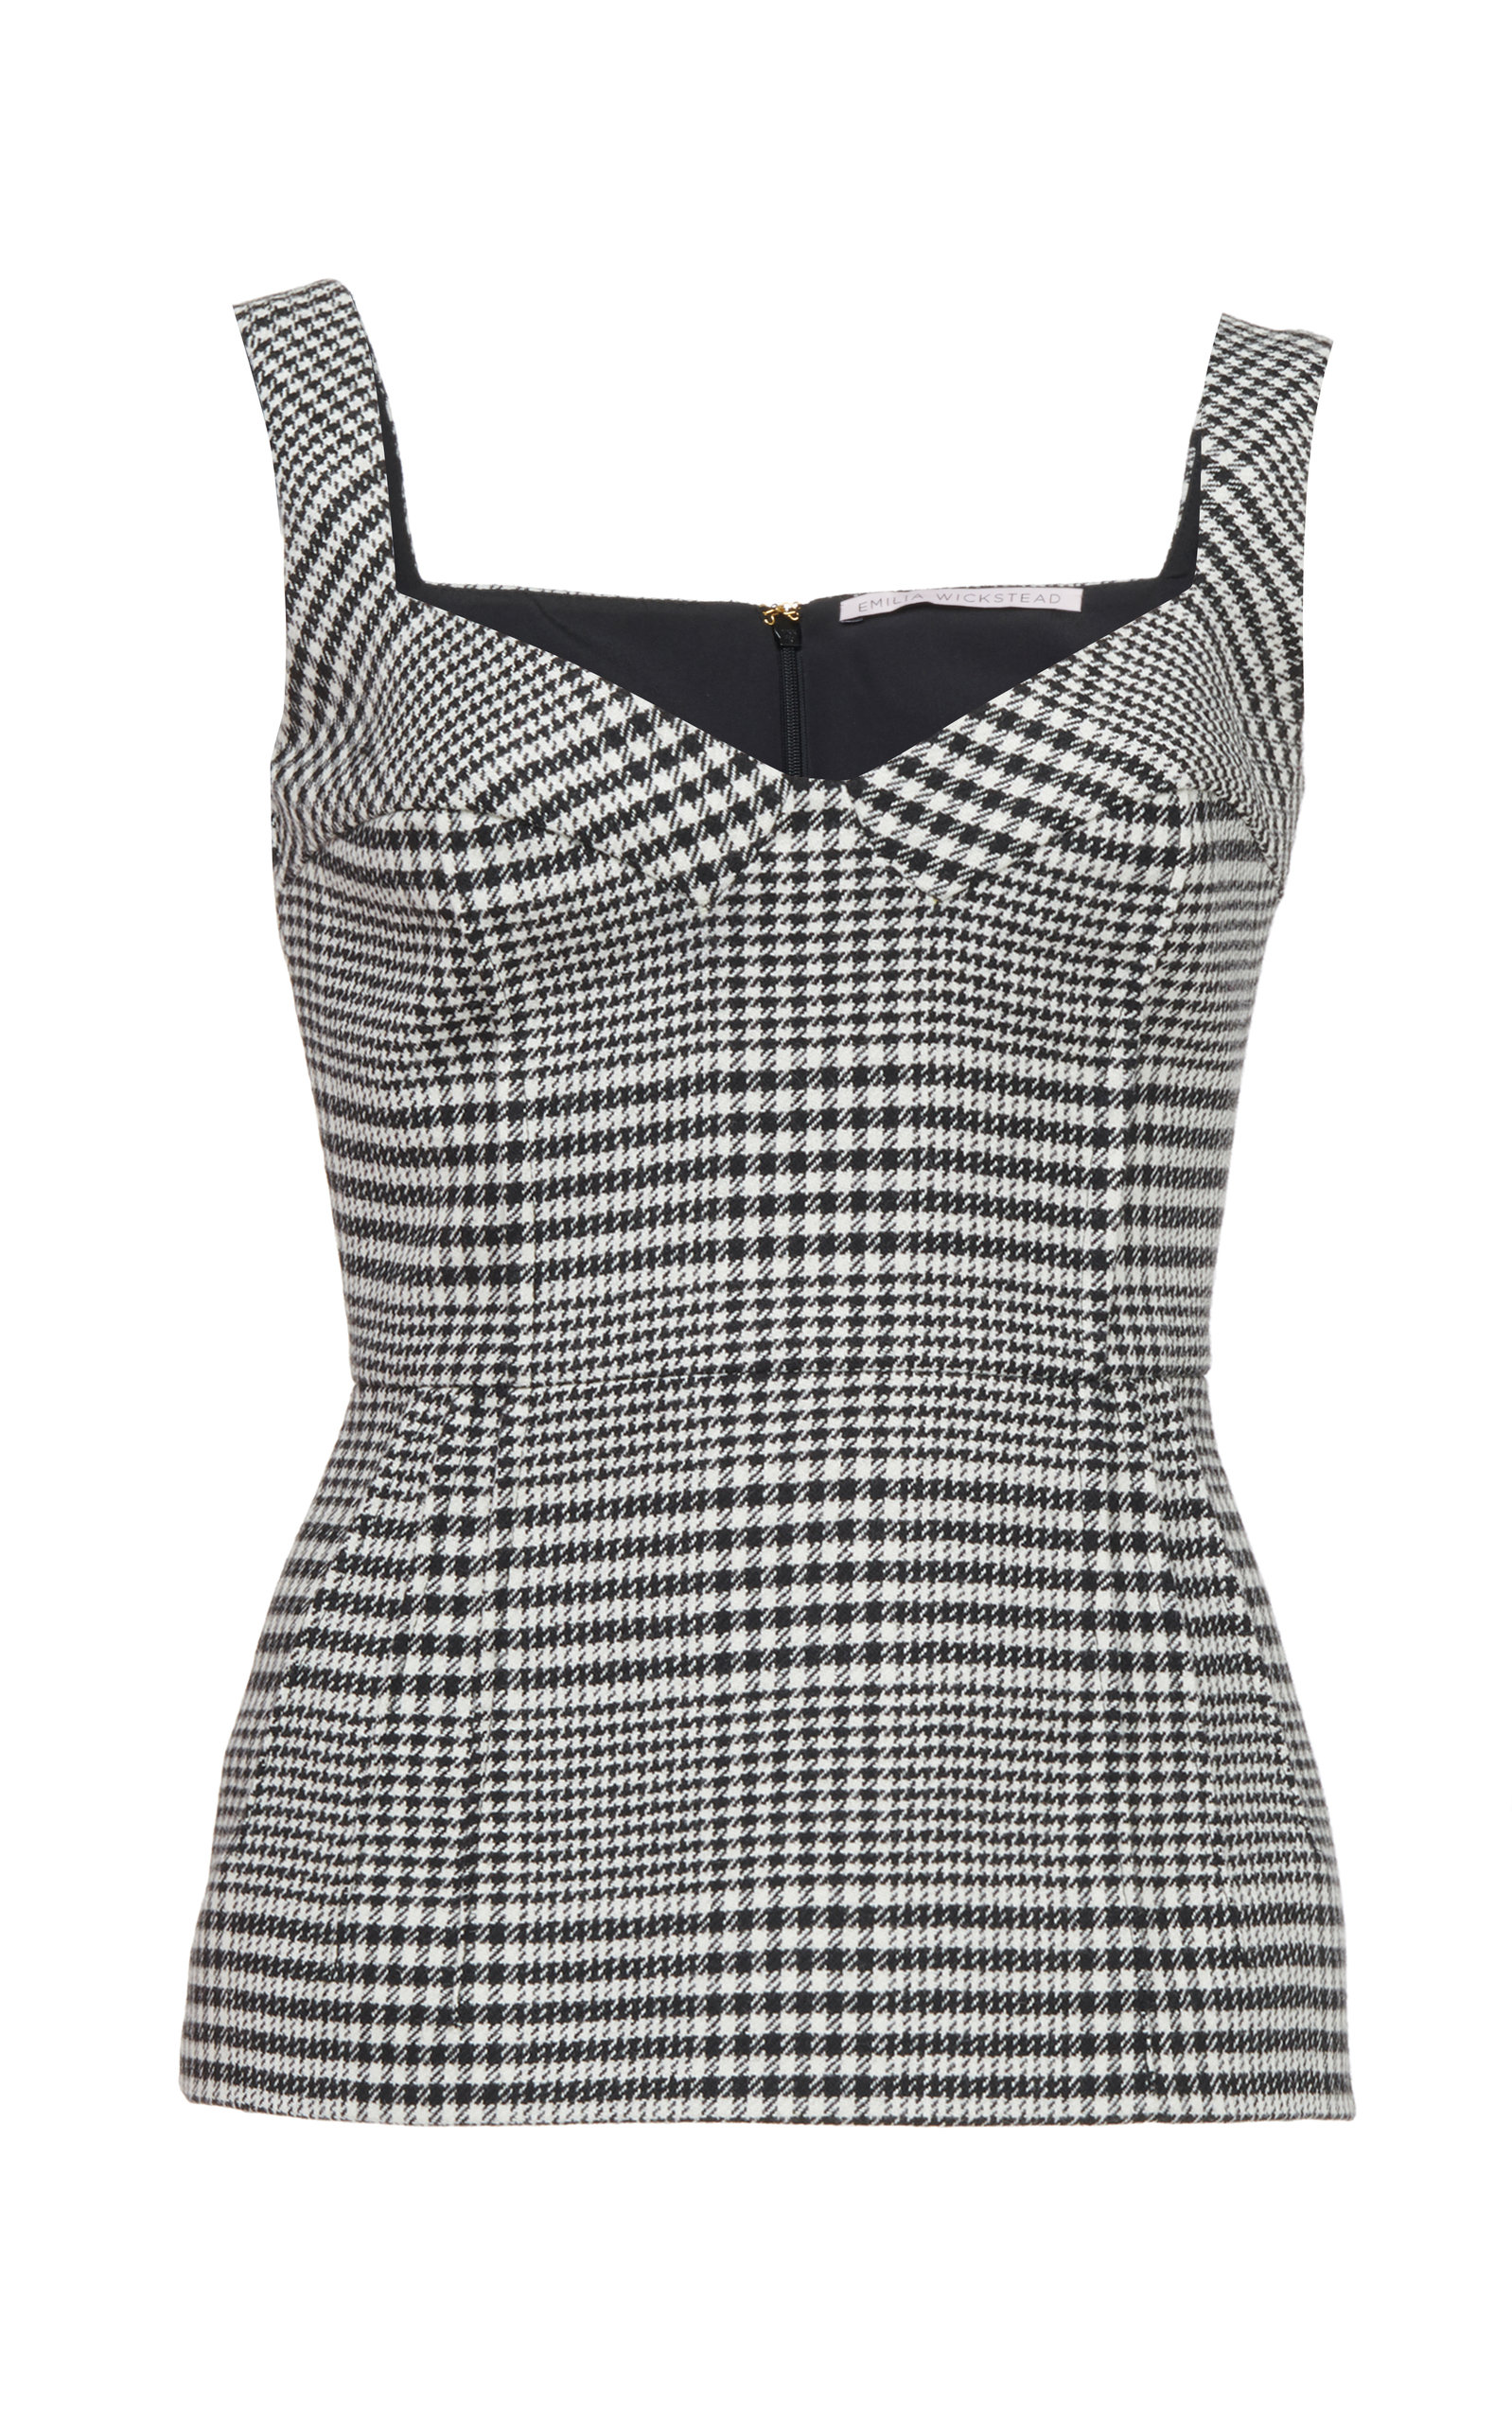 Emilia Wickstead JUDY CHECKED STRETCH-CREPE BUSTER TOP SIZE: 10